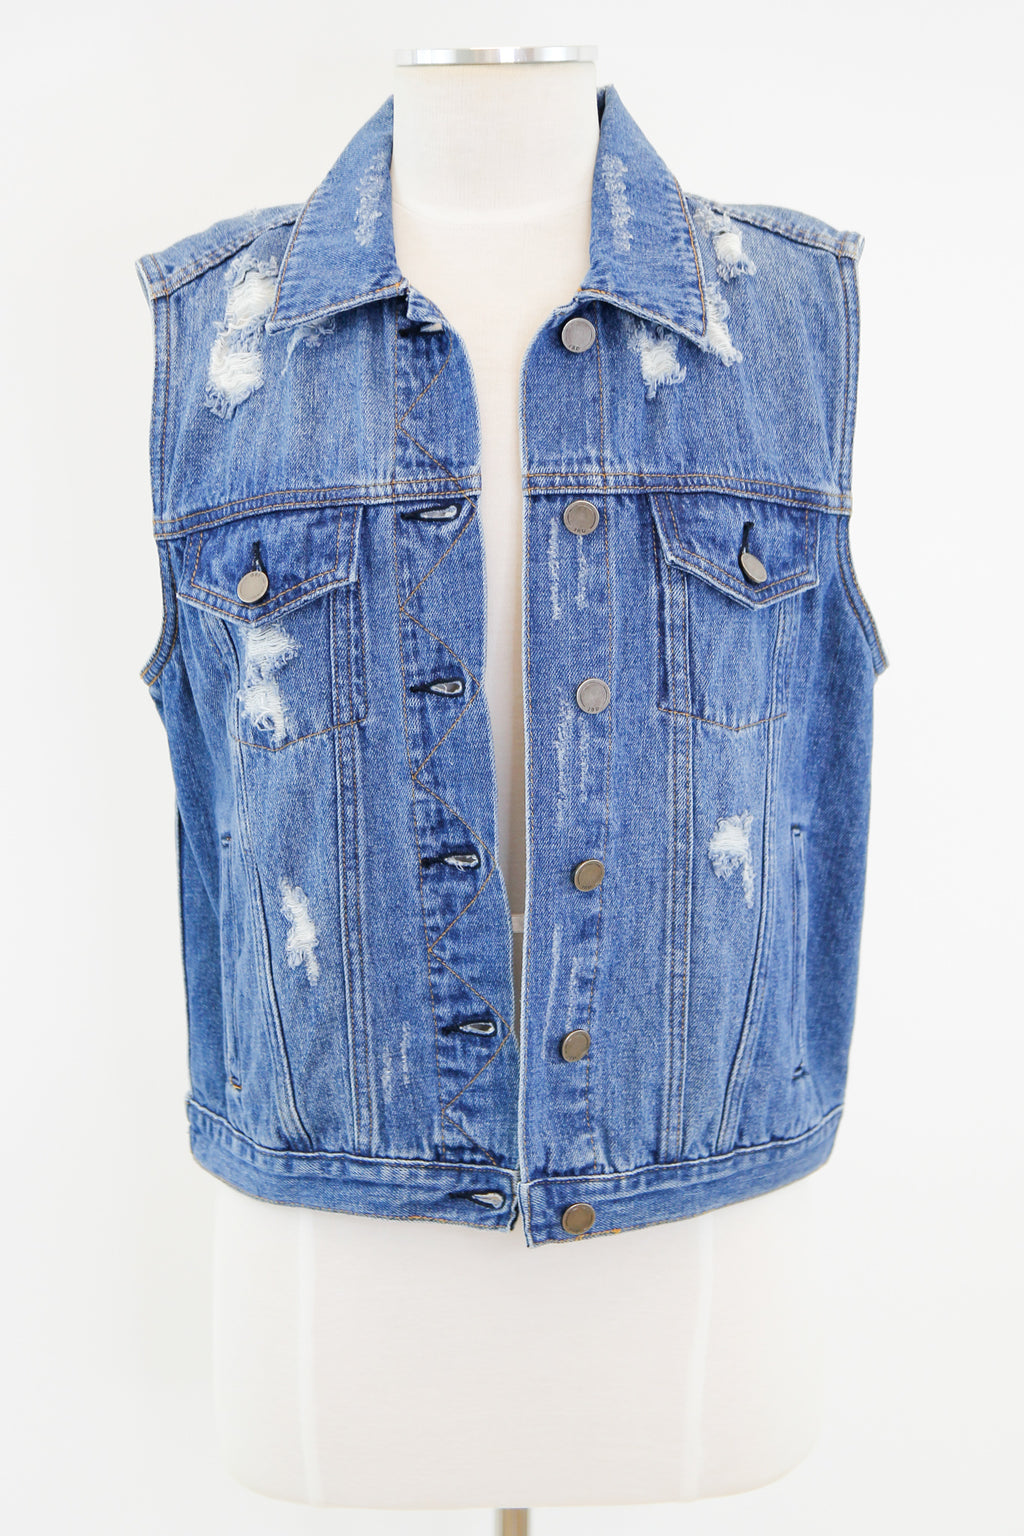 Distressed Denim Vest - Medium Wash